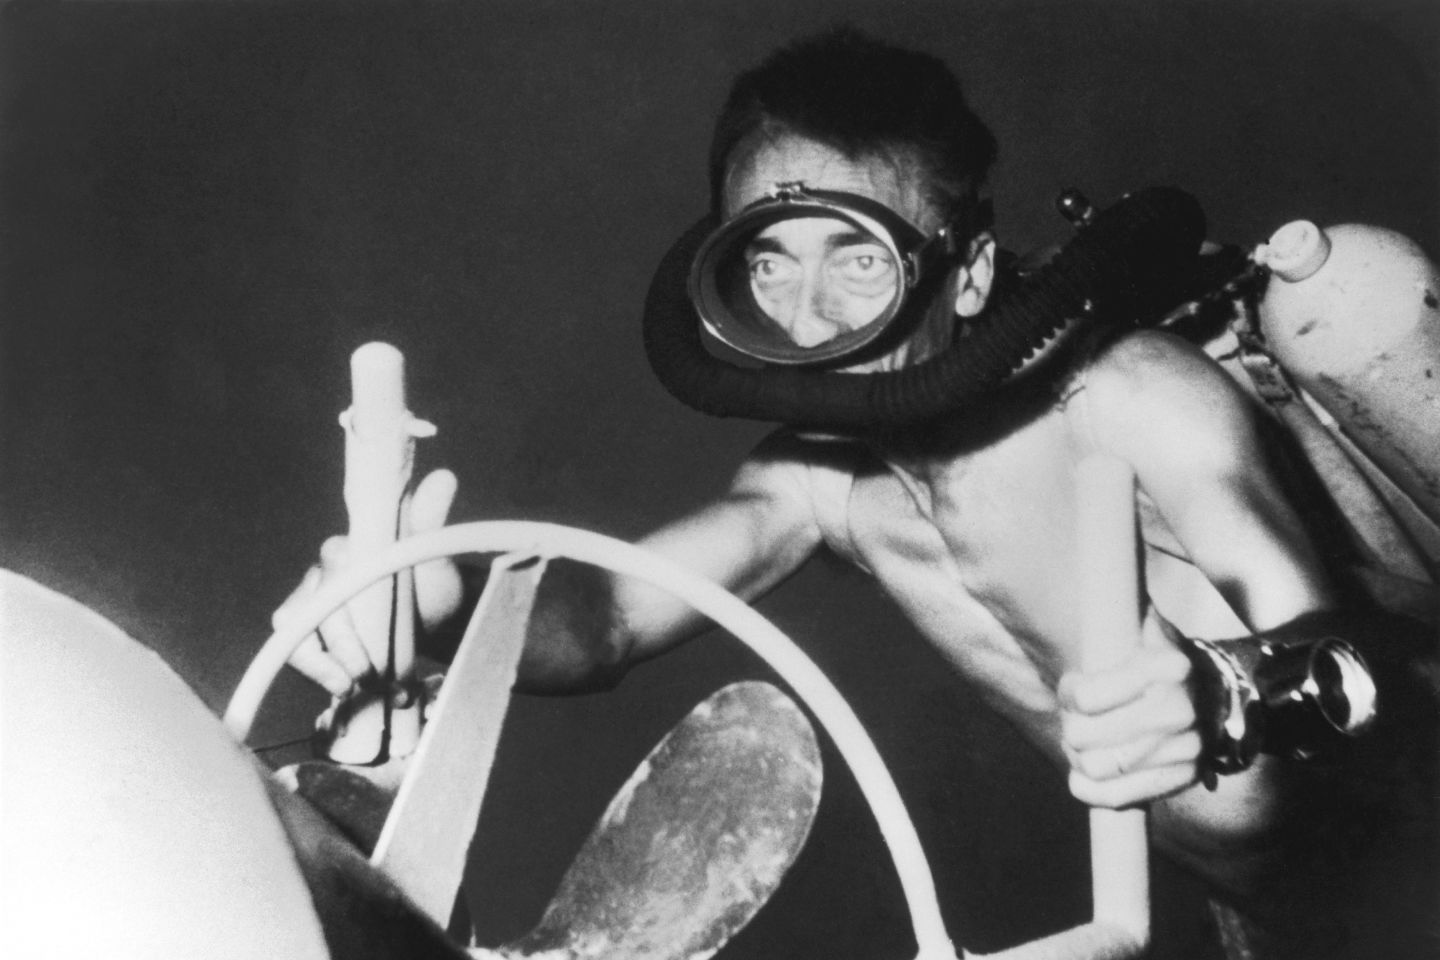 A GettyImages 104416017 gat9du - Il Capitano Jacques Cousteau: 30 immagini per ricordarlo